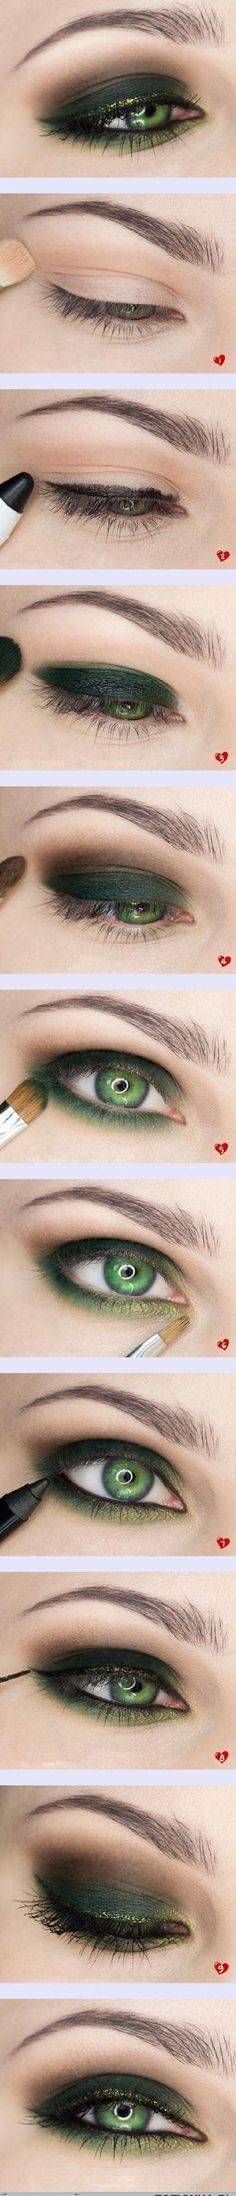 31907-Diy-Eye-Makeup-Tutorial